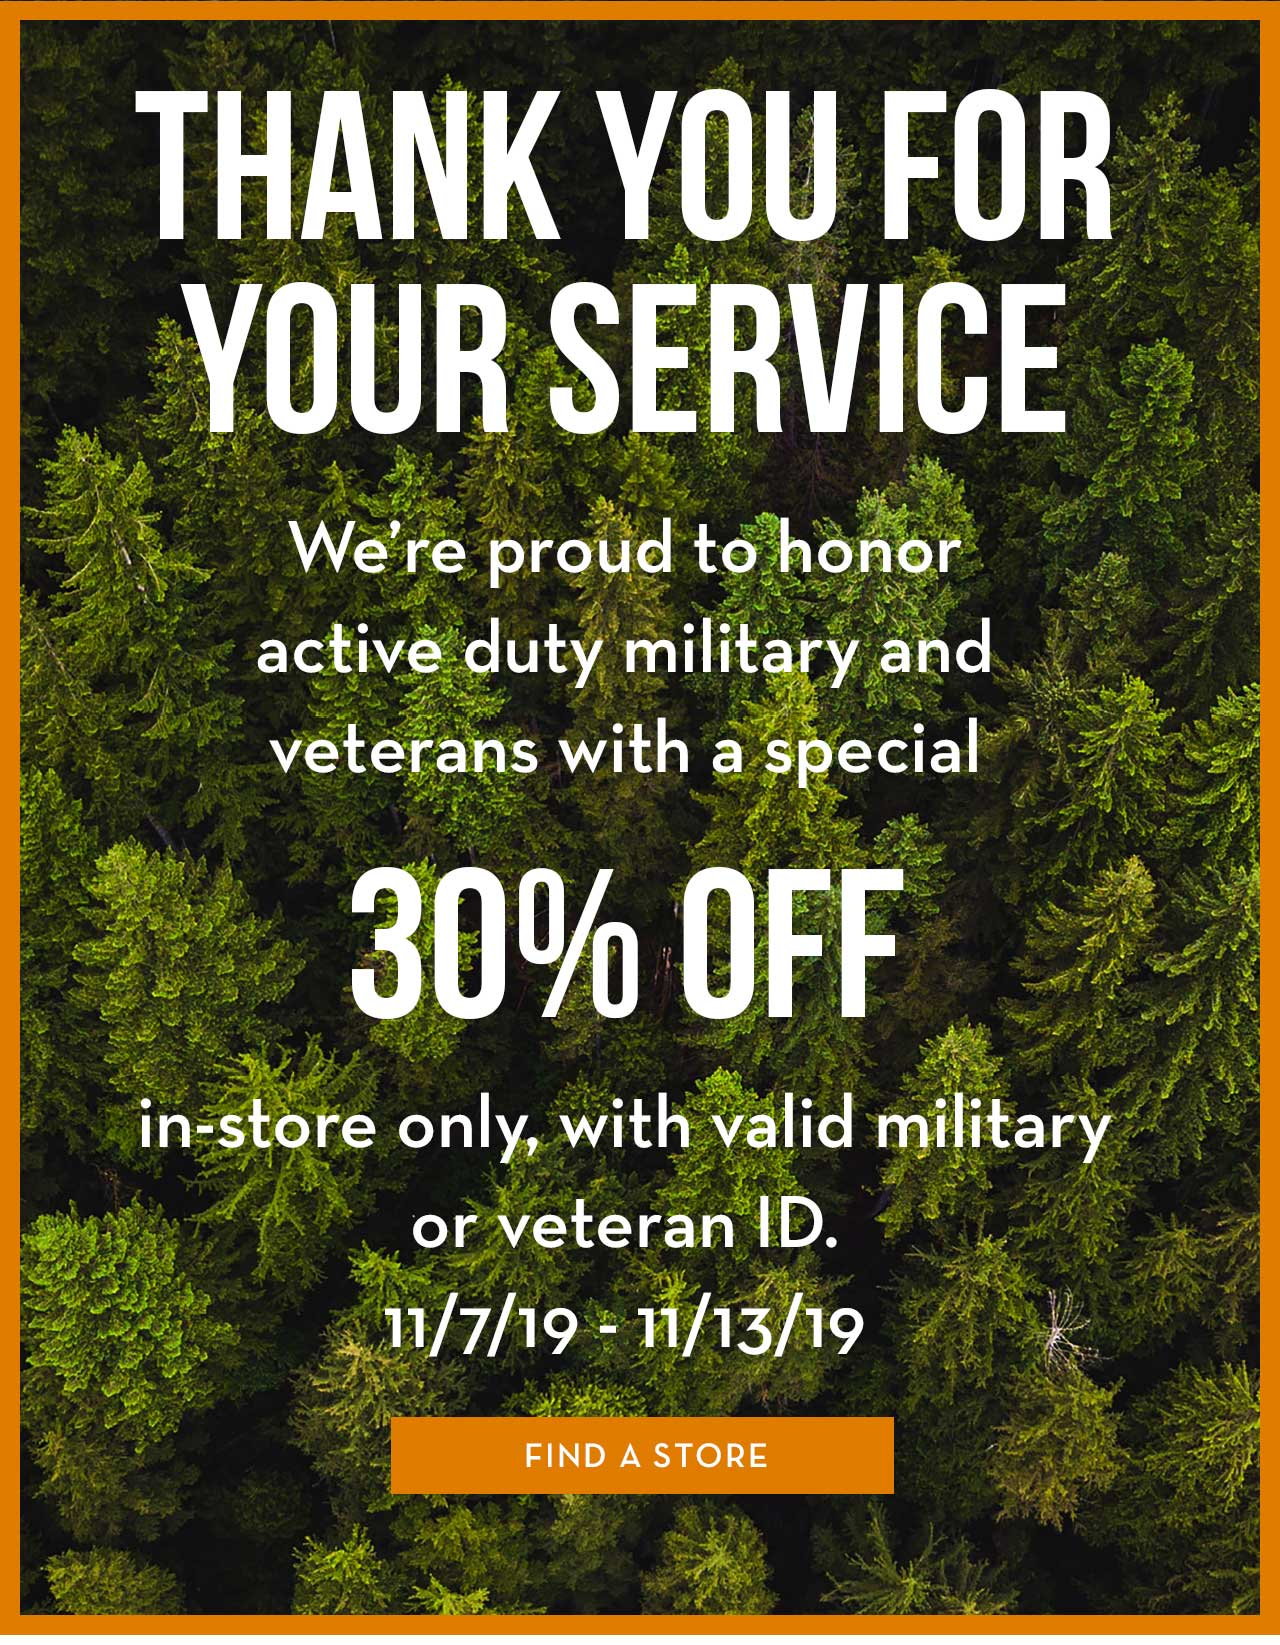 THANK YOU FOR YOUR SERVICE 30% OFF FIND A STORE